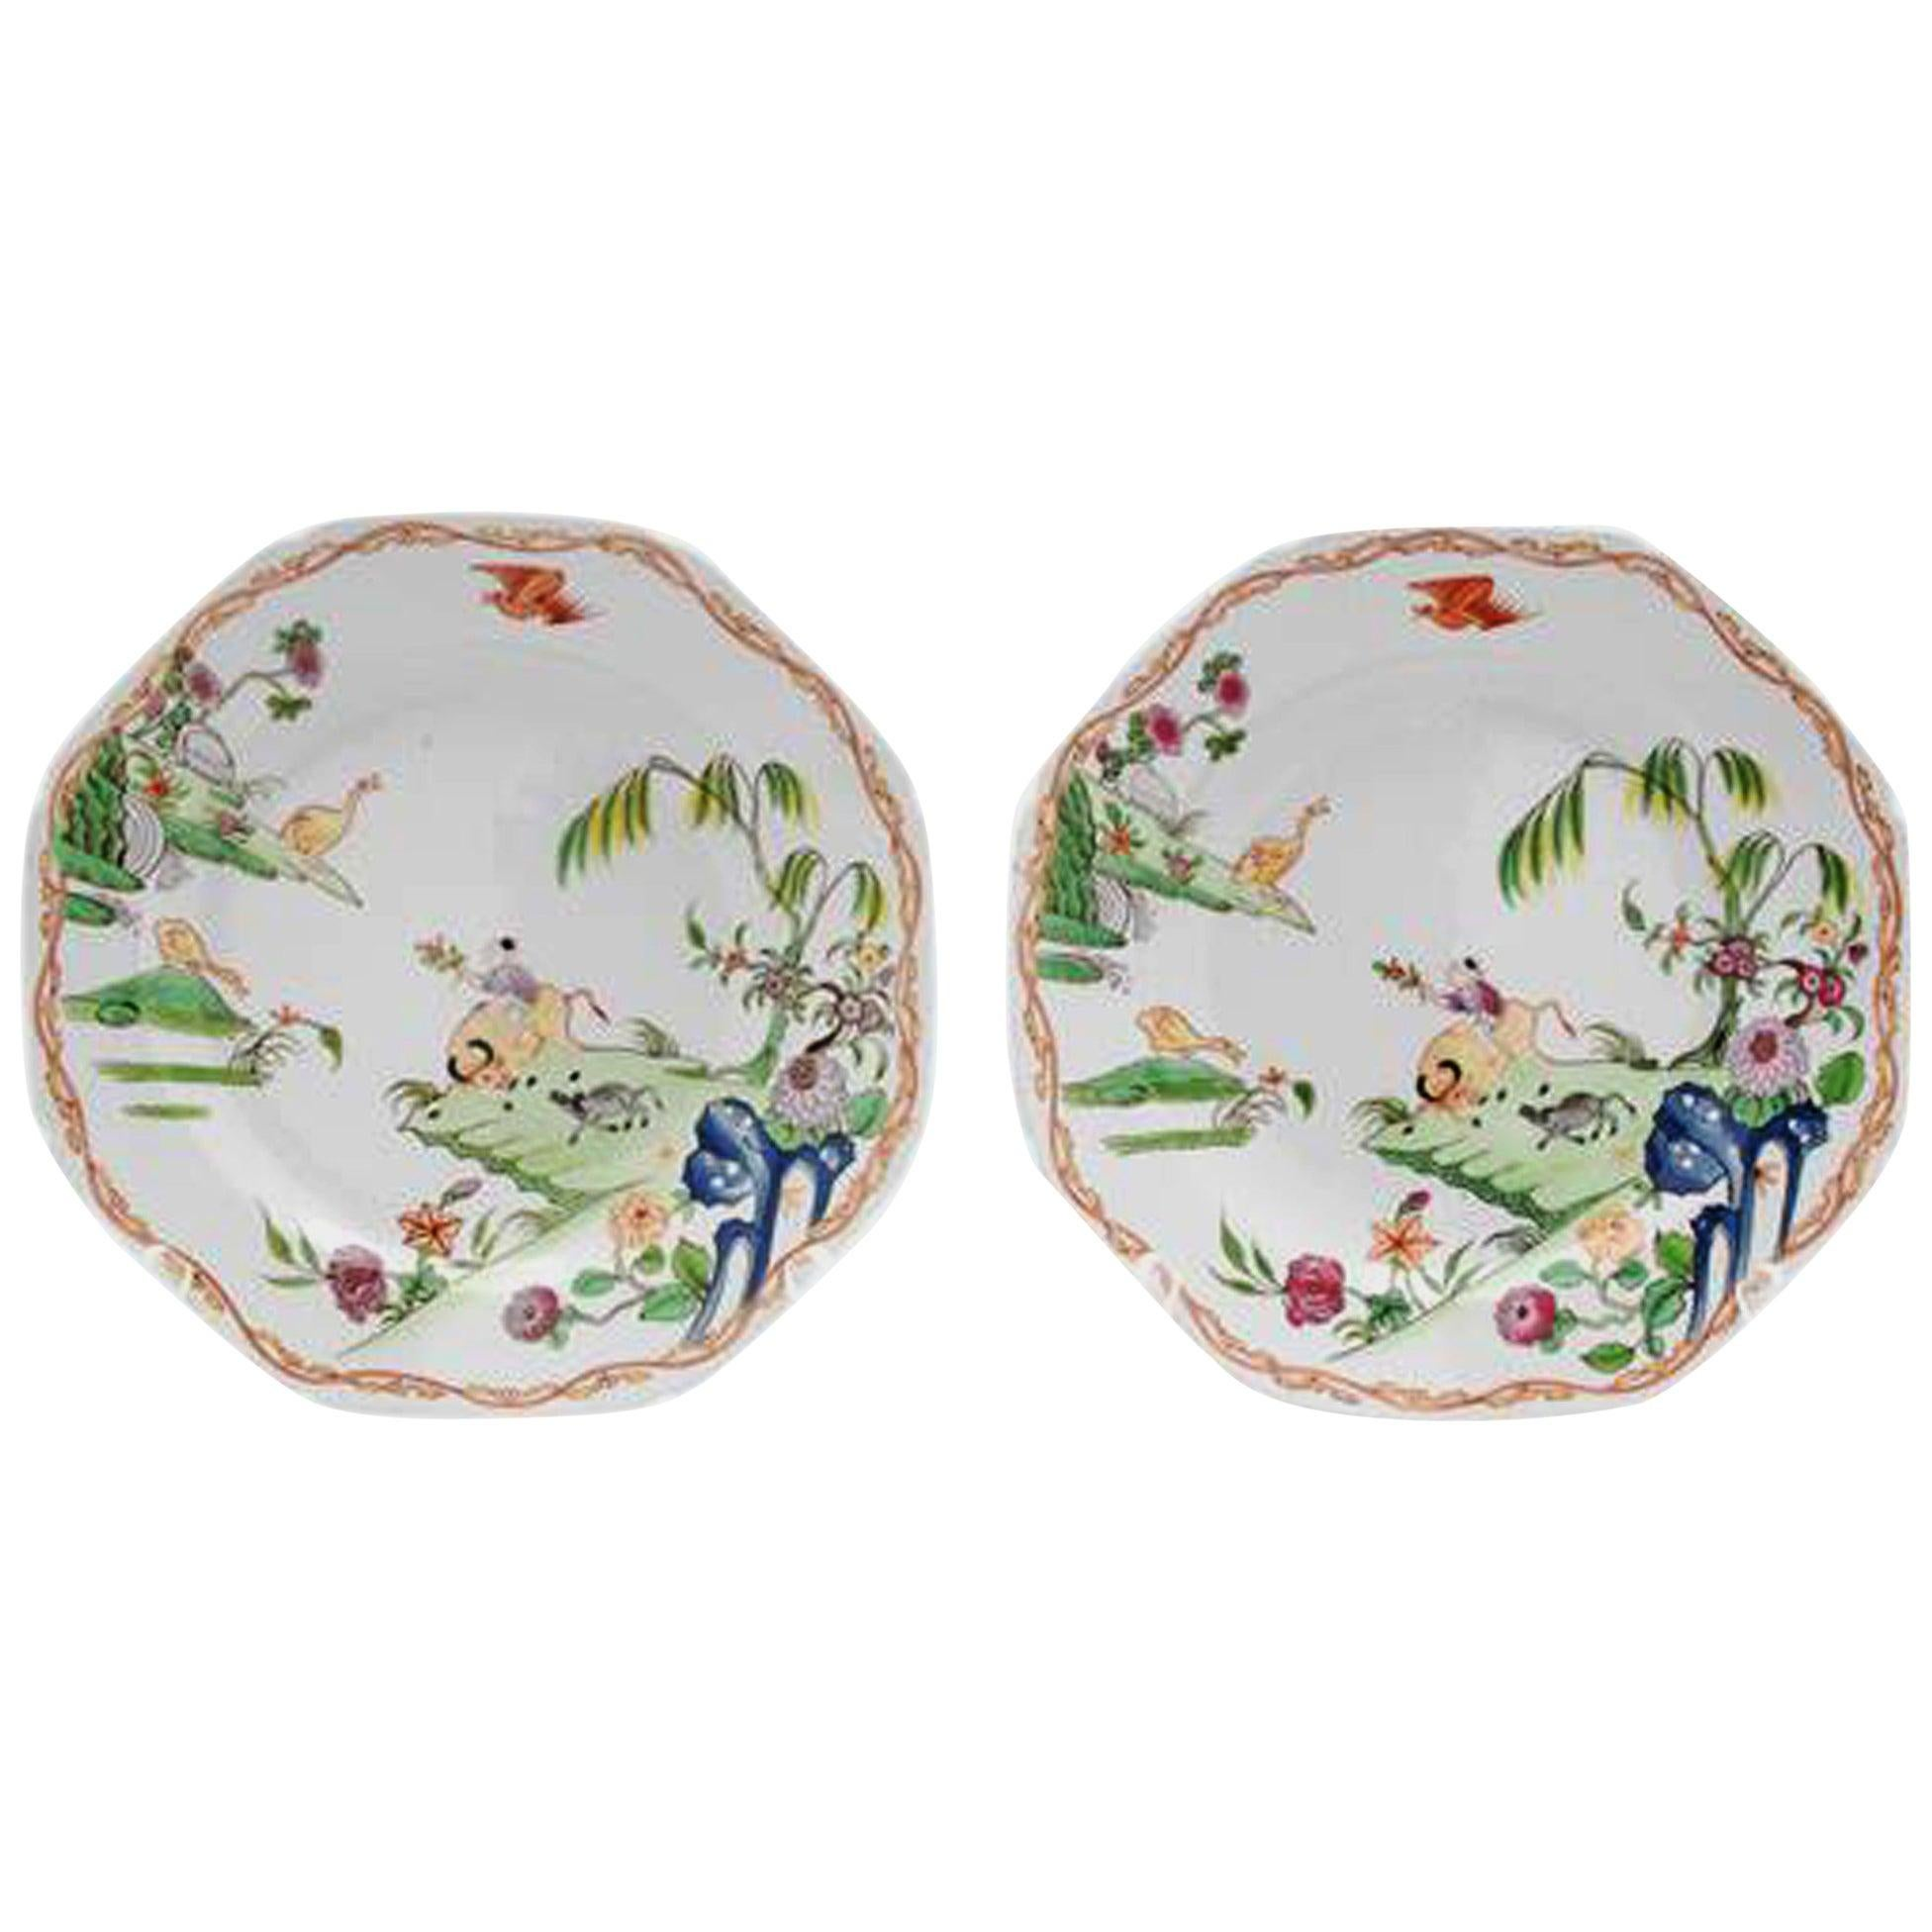 English Porcelain Pair of Chinoiserie Plates with the Boy and Buffalo Pattern